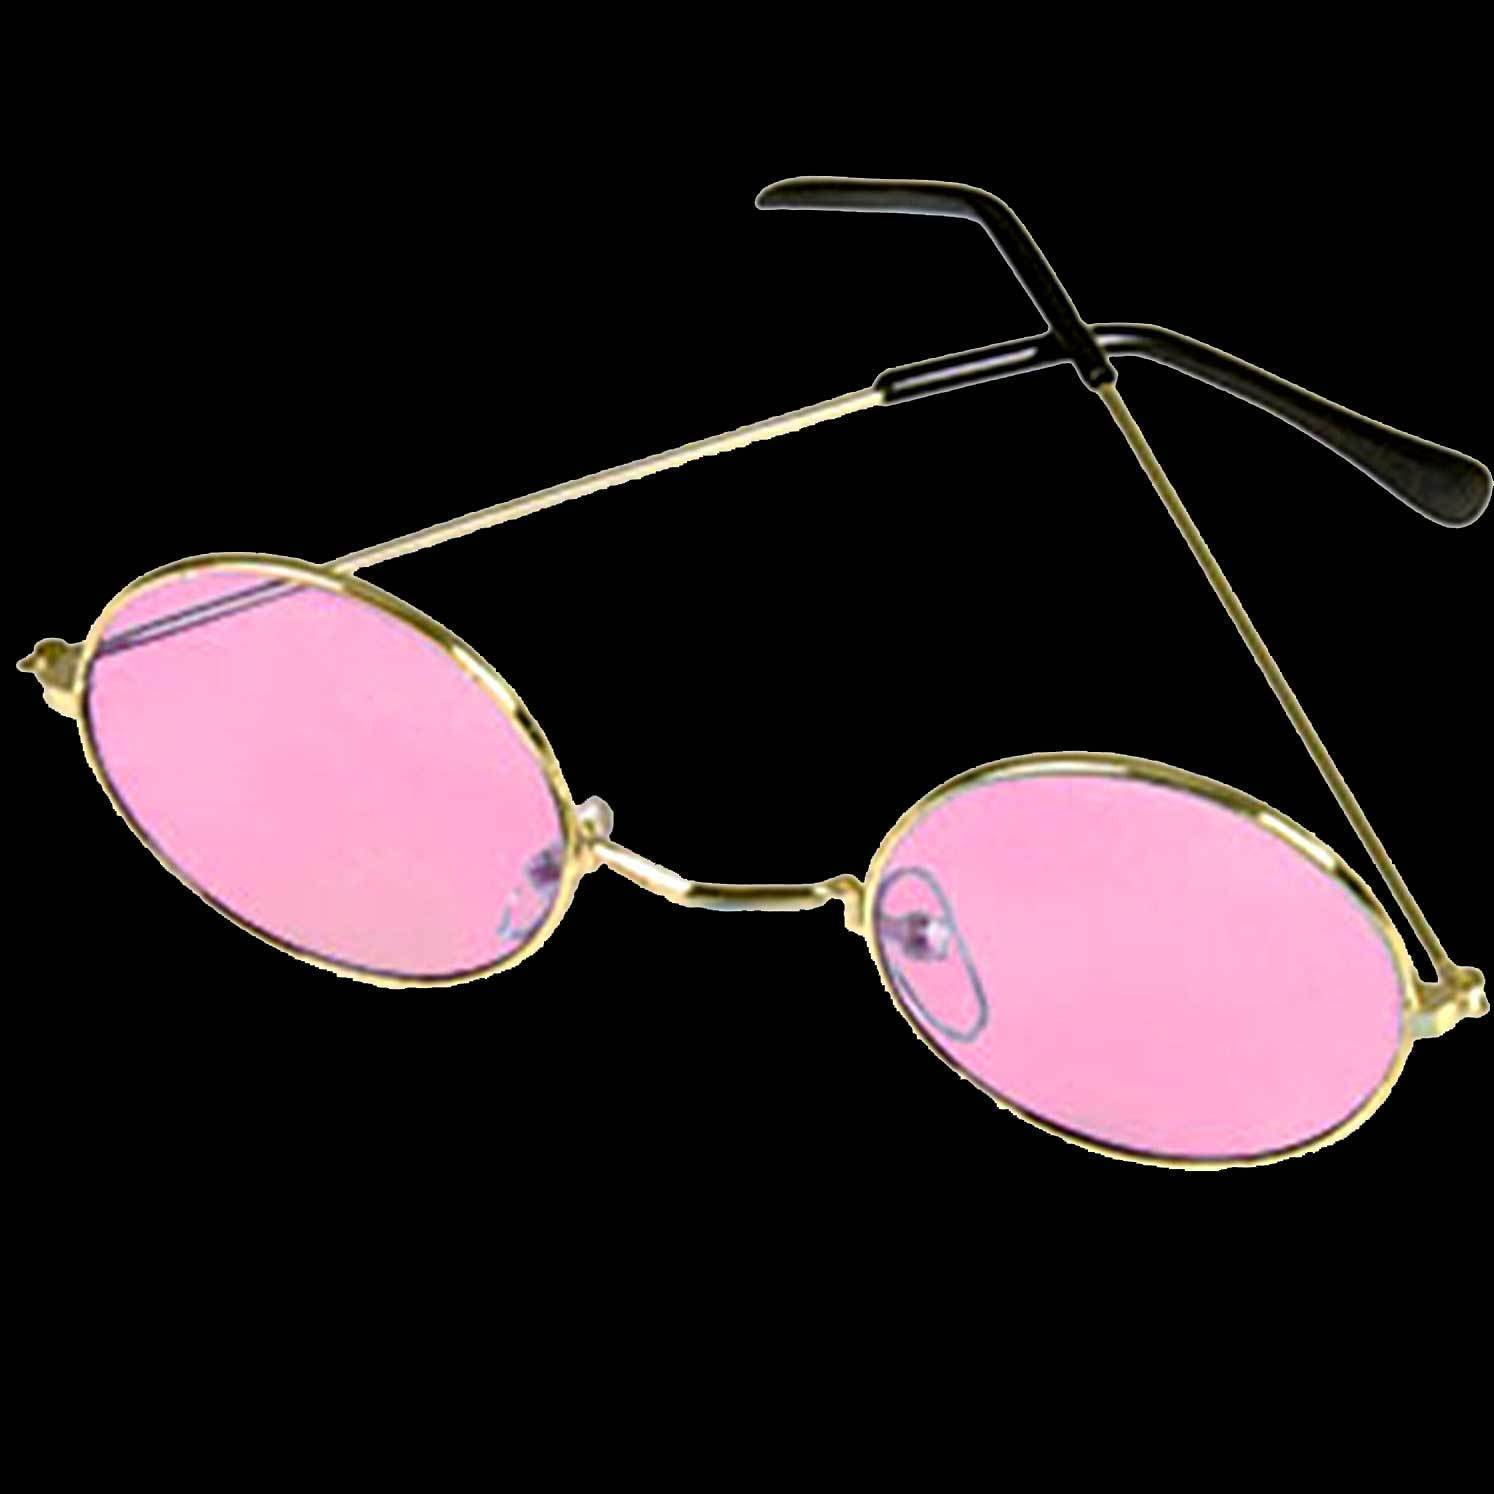 Groovy Hippie Funky Novelty ROUND COSTUME GLASSES Retro Lennon Gold Frames-PINK